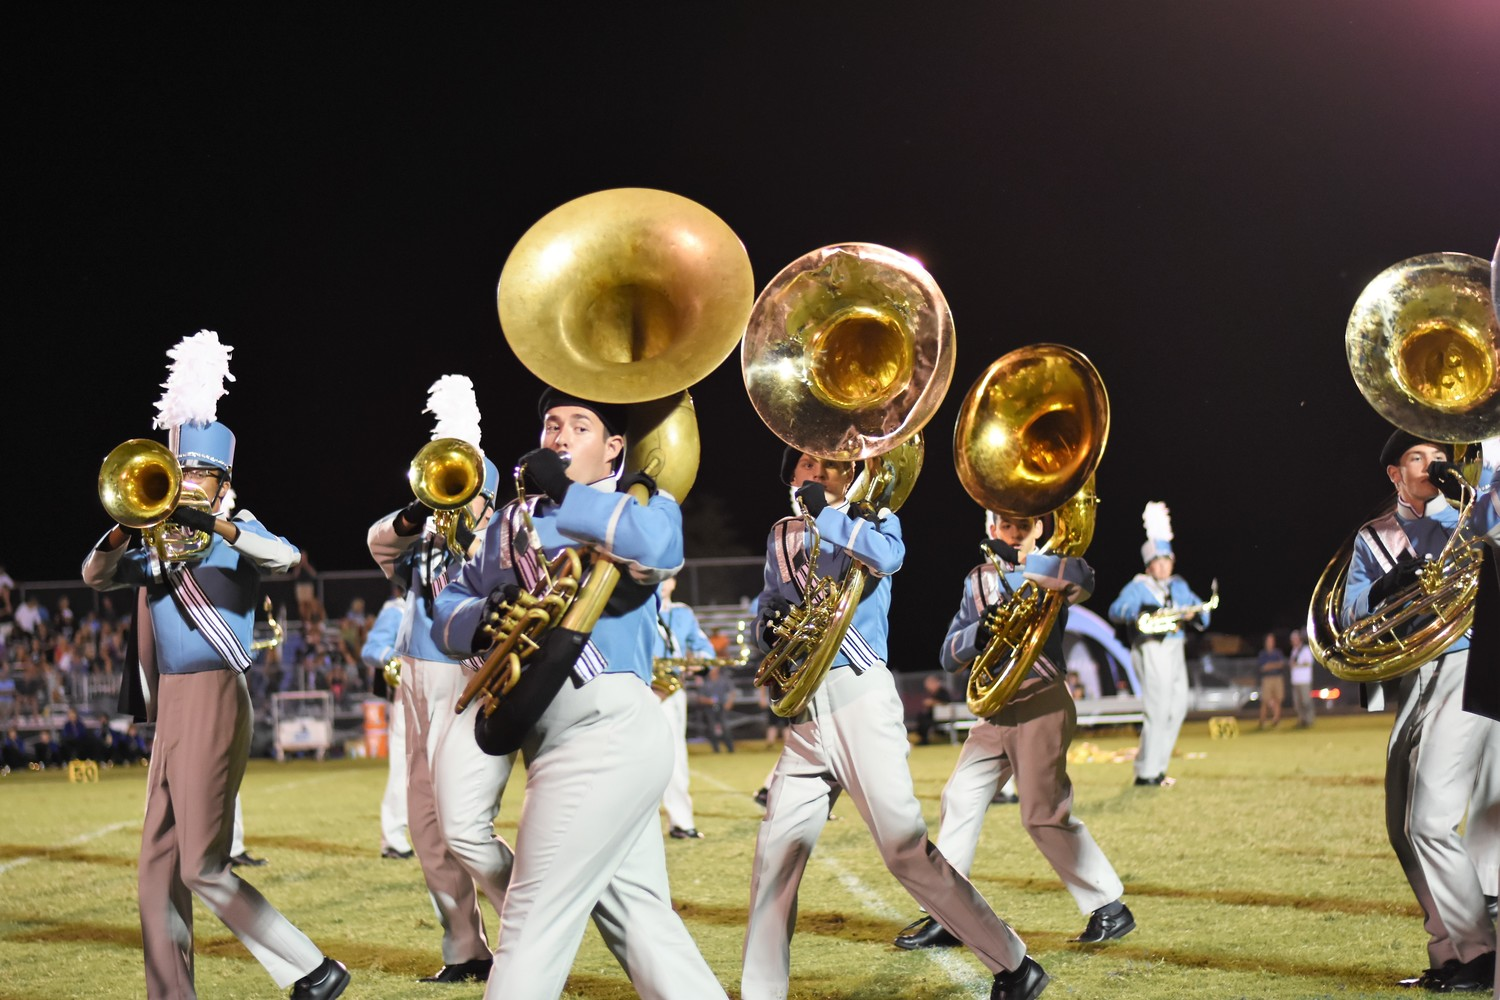 The sousaphone section performs at Pedro Melendez High School's halftime show on Sept. 22.